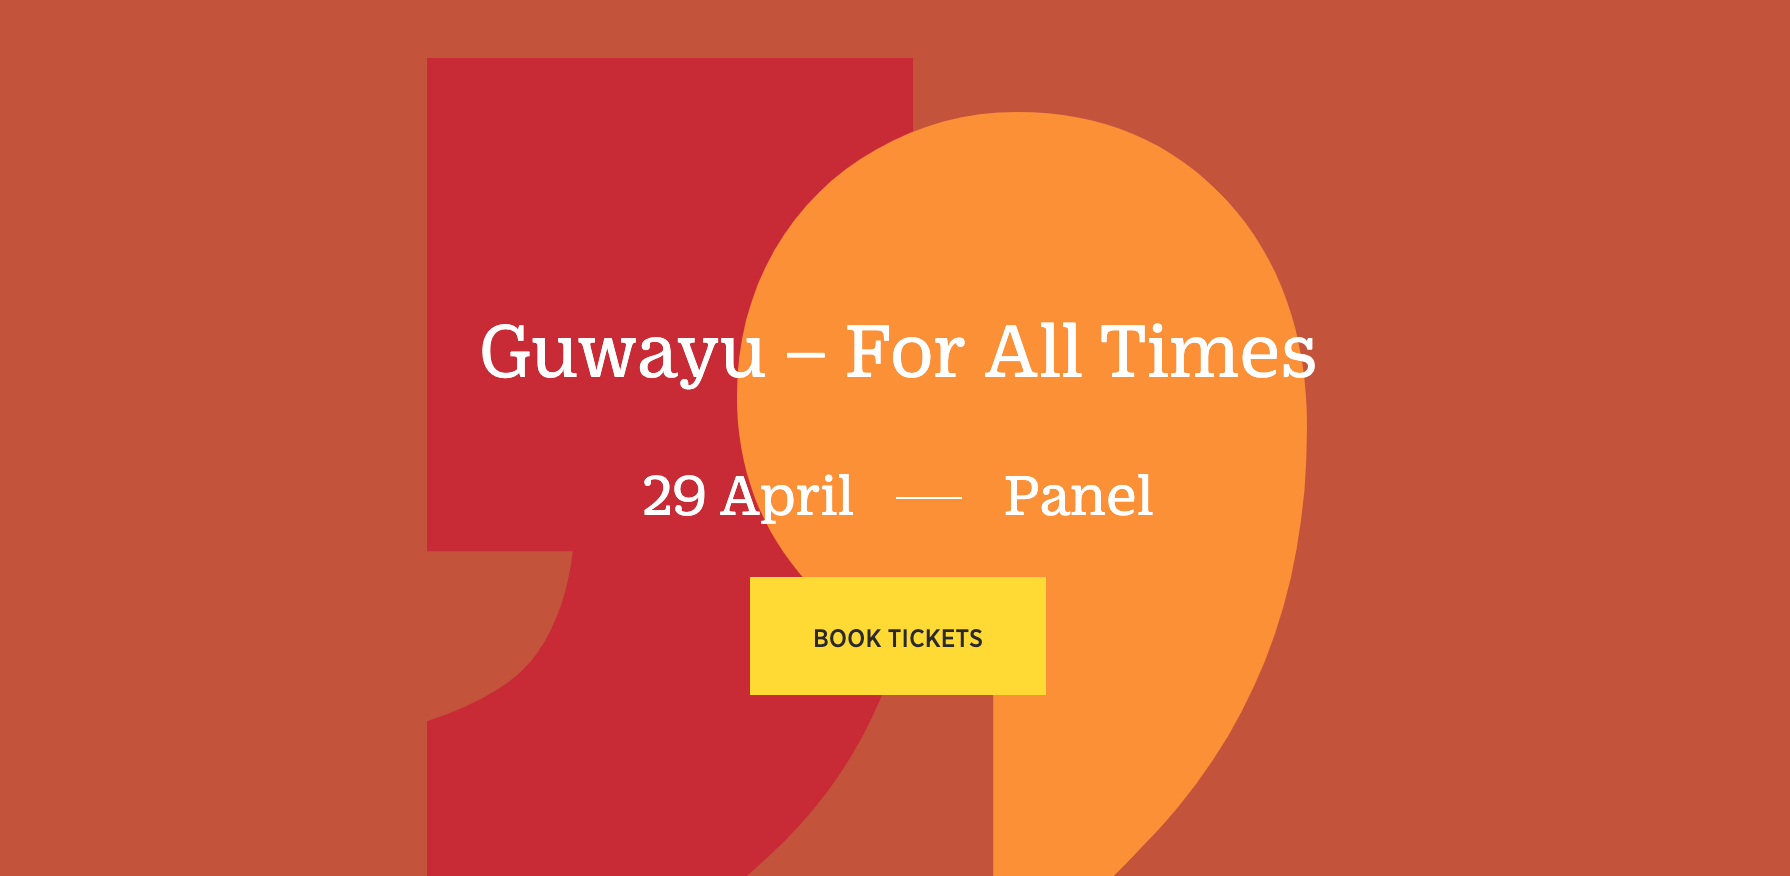 Guwayu For All Times Panel @ SWF.png